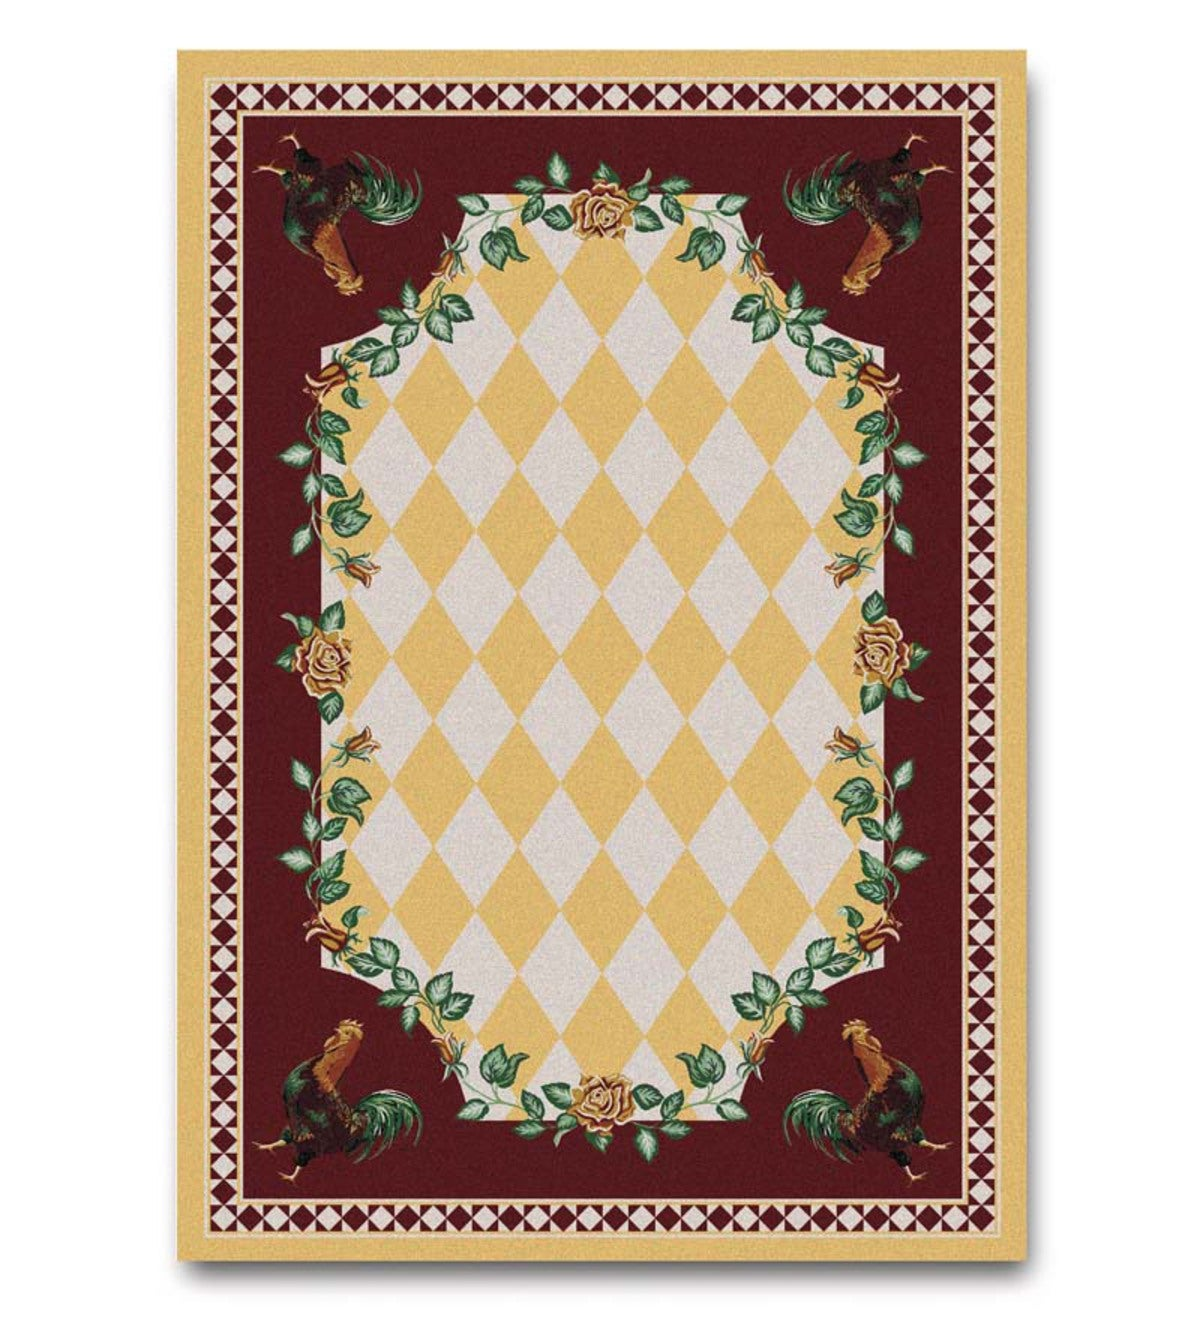 4' X 5' High Country Rooster Area Rug